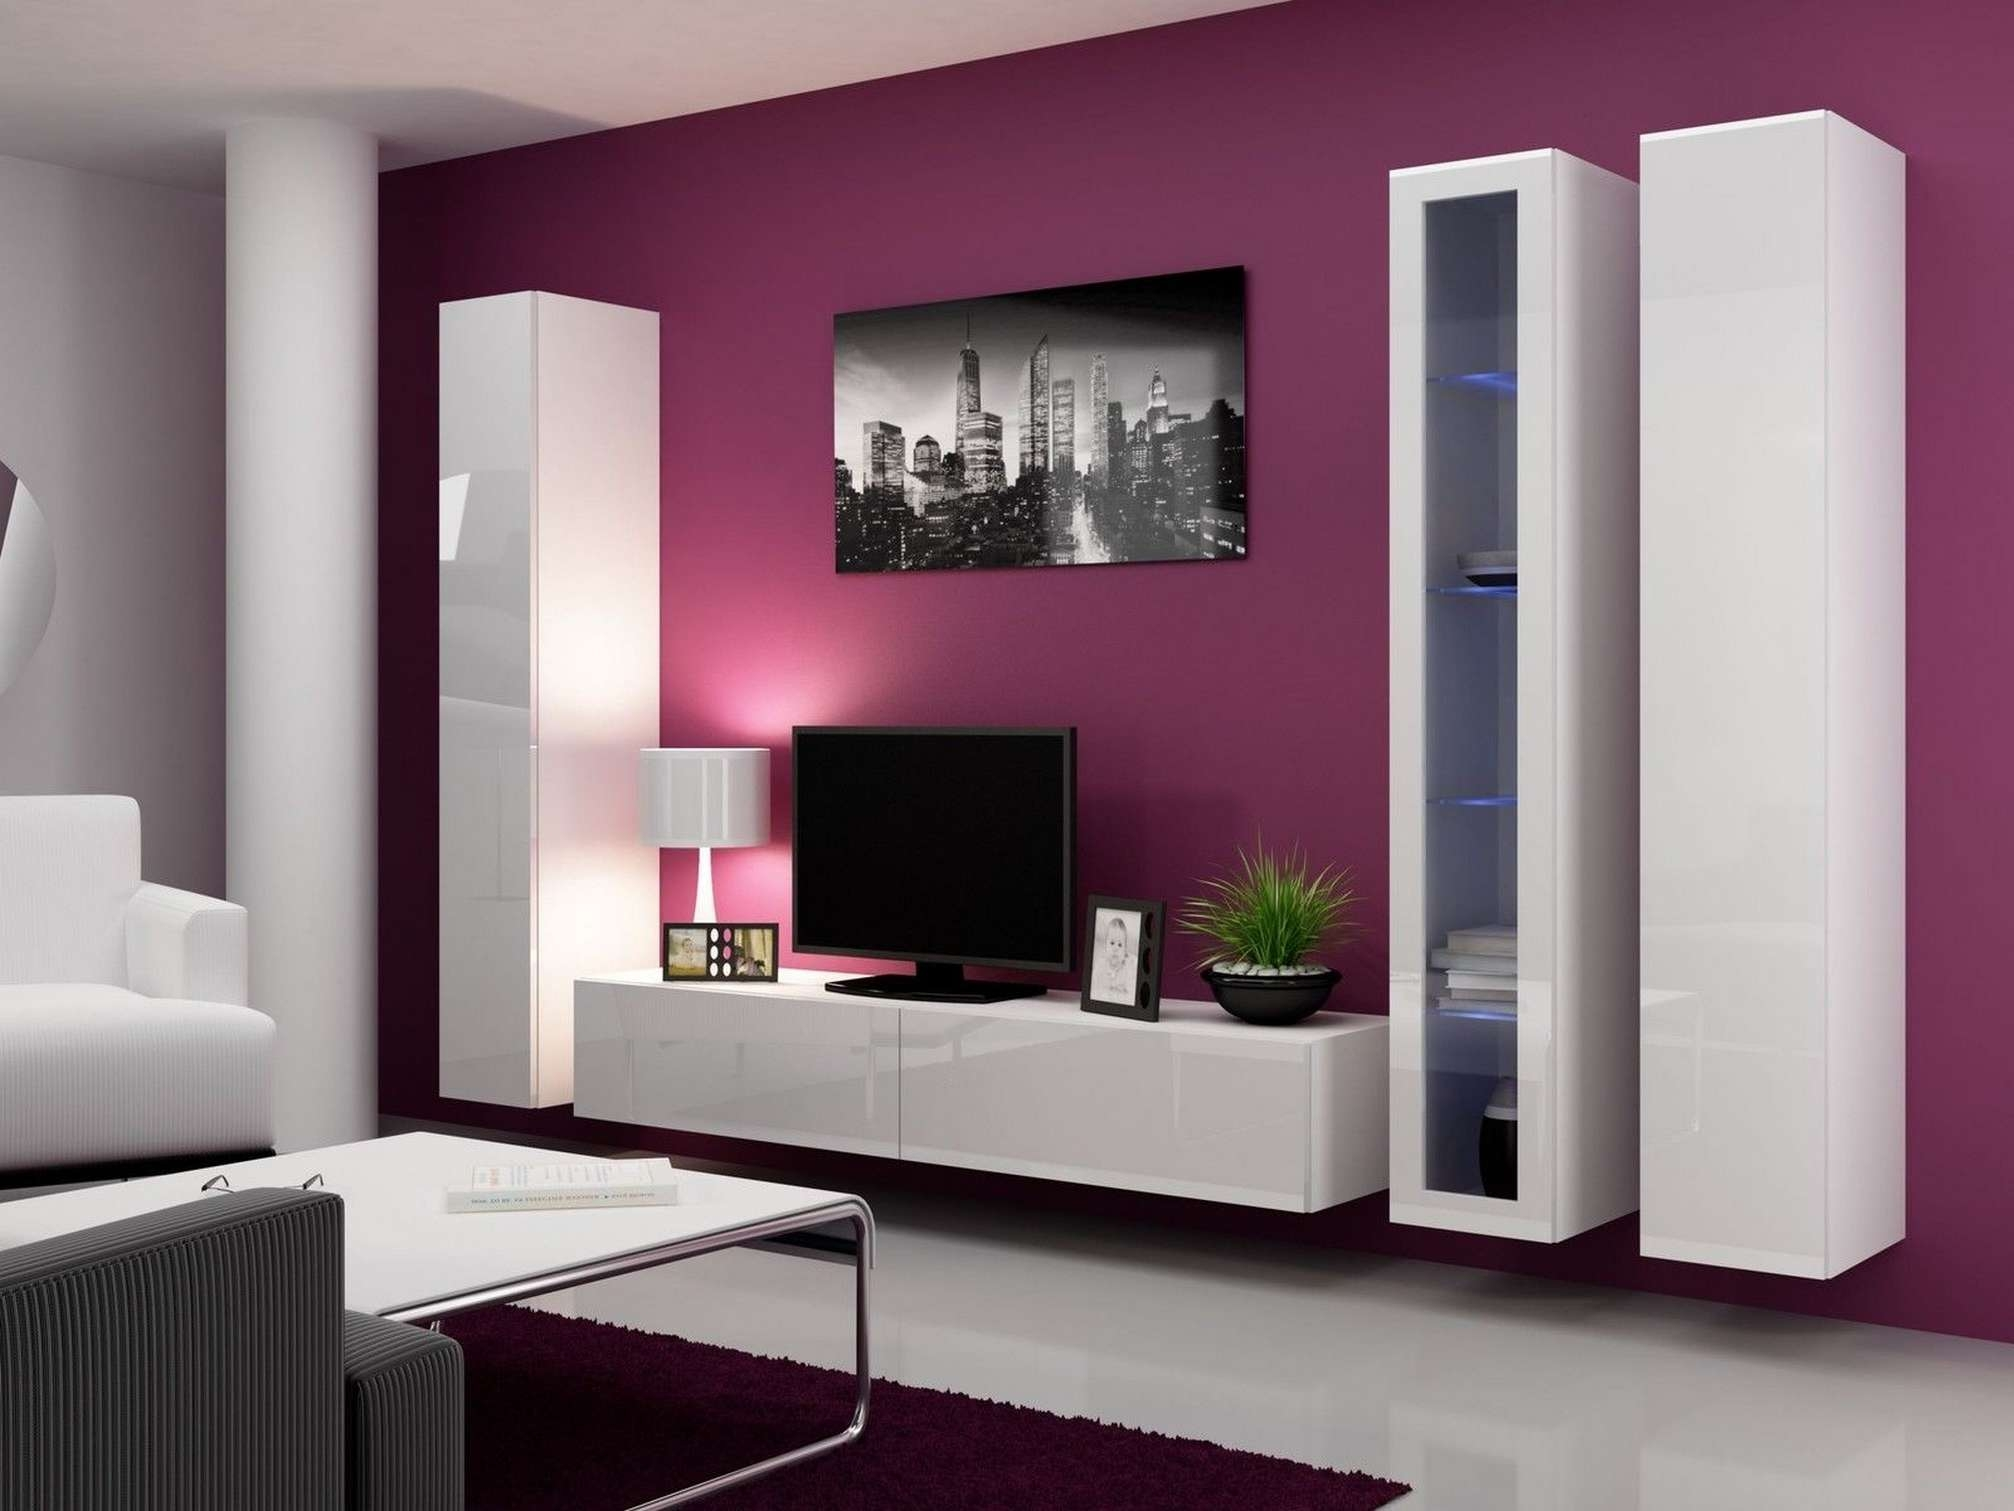 Pink Color Schemes Ideas For Living Room With Modern Wall Mounted With Regard To Modern Wall Mount Tv Stands (View 15 of 20)